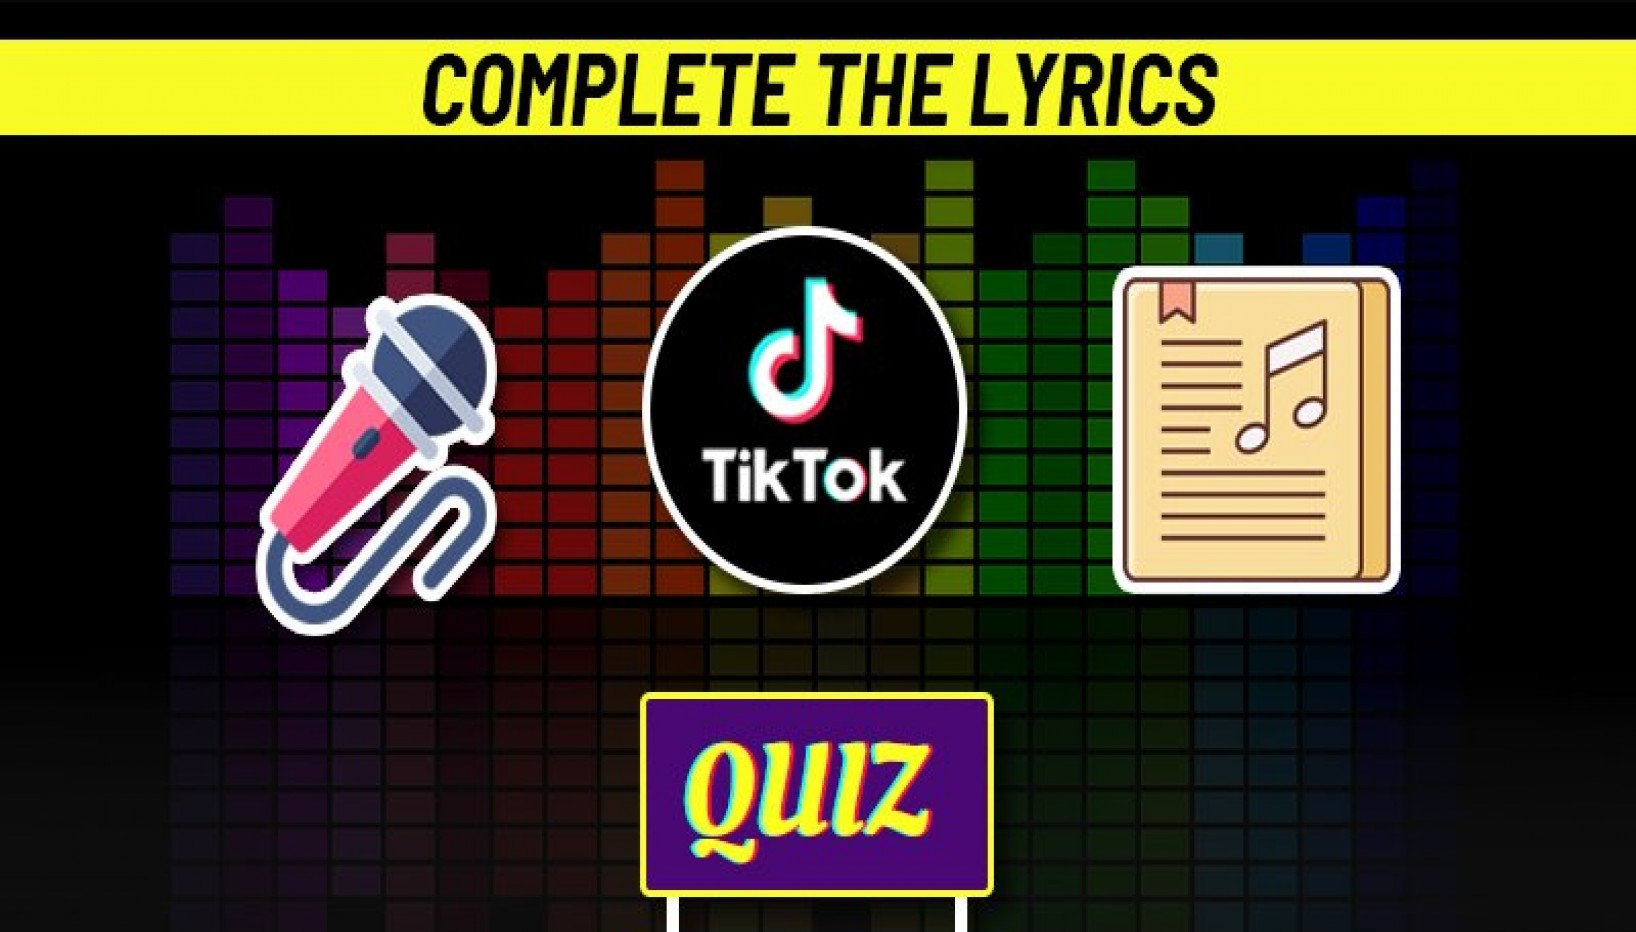 QUIZ: You're Spending Too Much Time On Tiktok If You Can Complete These Lyrics